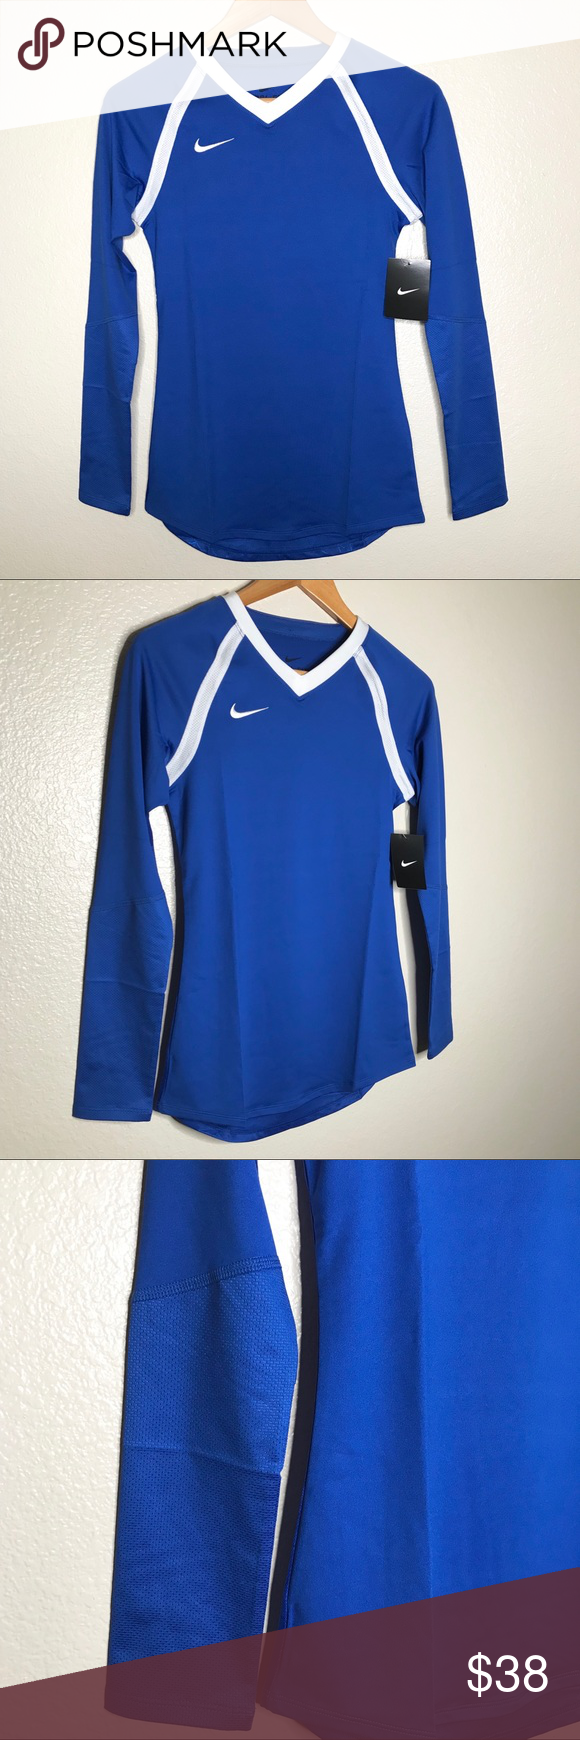 Nike Dri Fit Volleyball V Neck Embroidered Swoosh Active Wear Shirts Active Wear Tops Nike Dri Fit